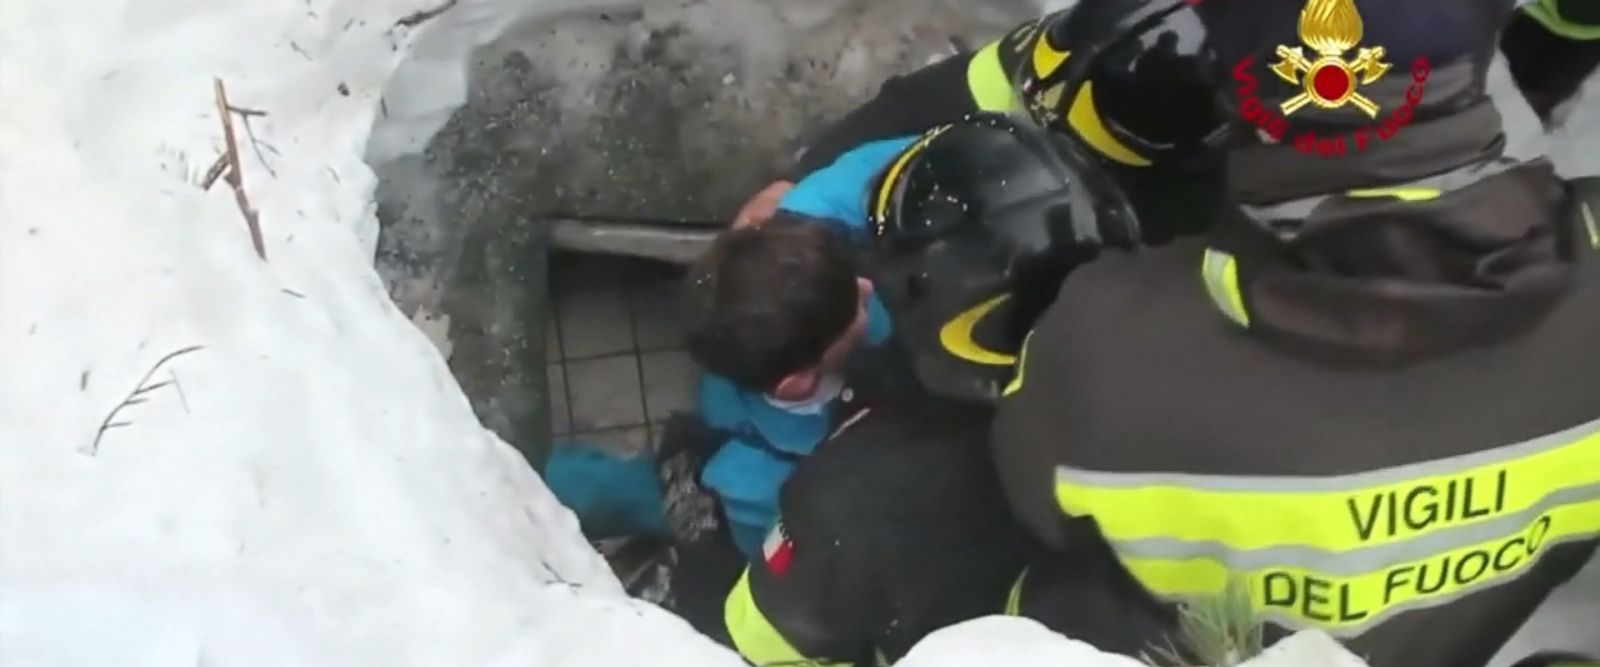 VIDEO: Survivors including a child and mother were rescued from the rubble and snow after an avalanche trapped them inside a hotel in Italy.